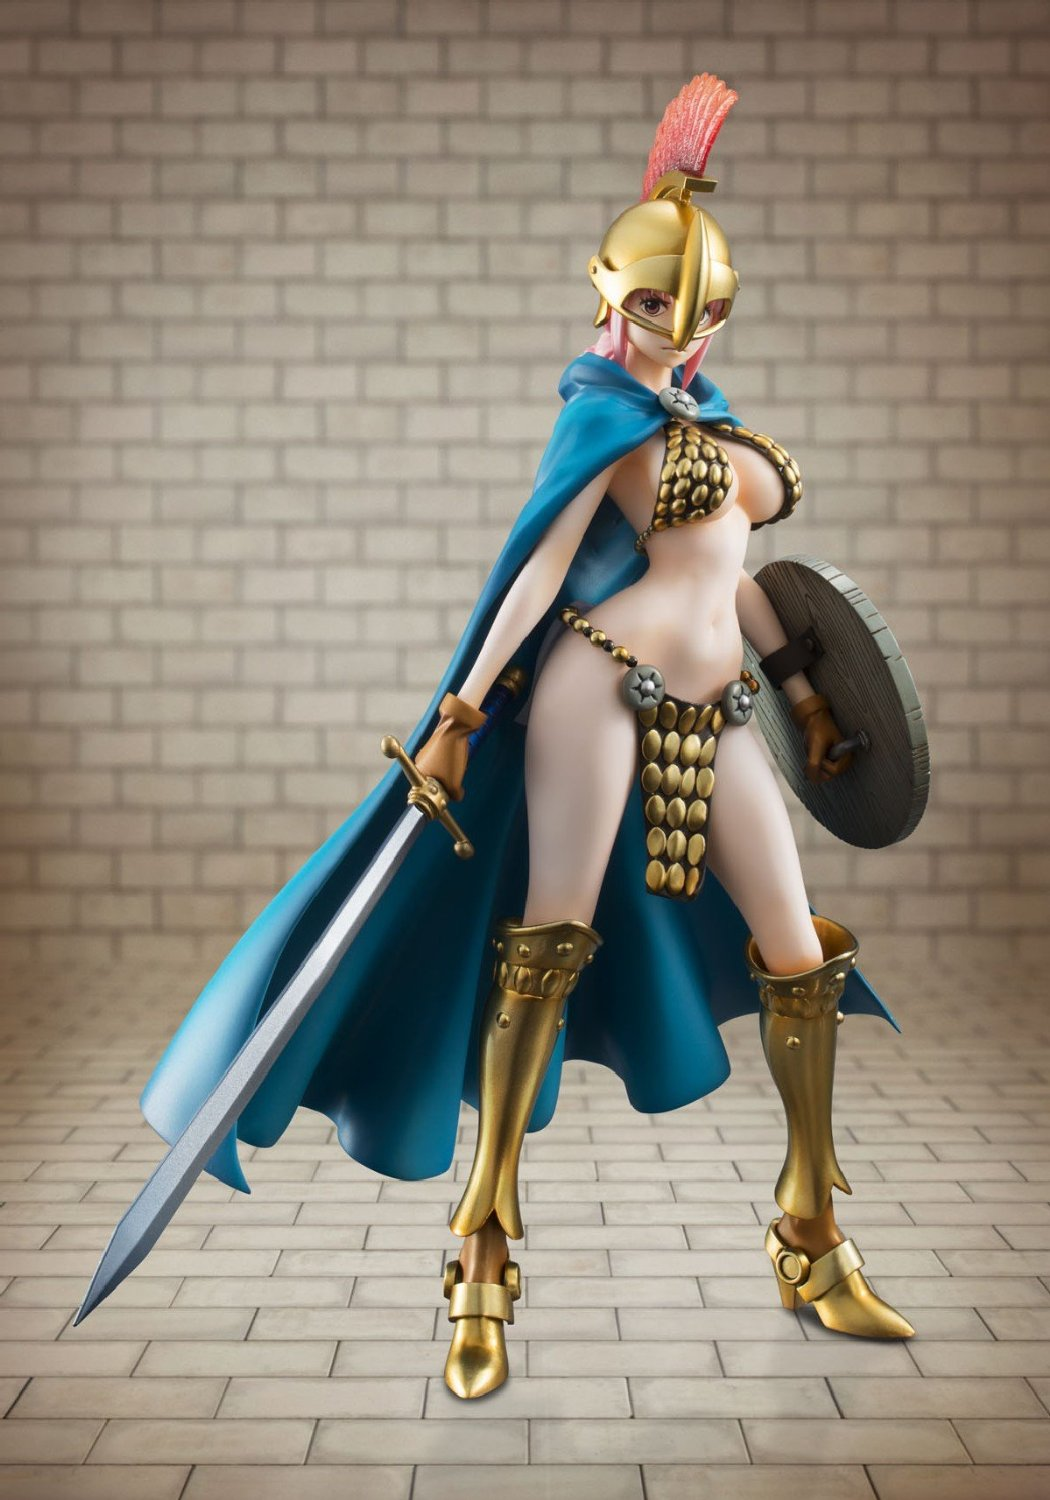 Megahouse One Piece POP Rebecca The Gladiator Excellent Model